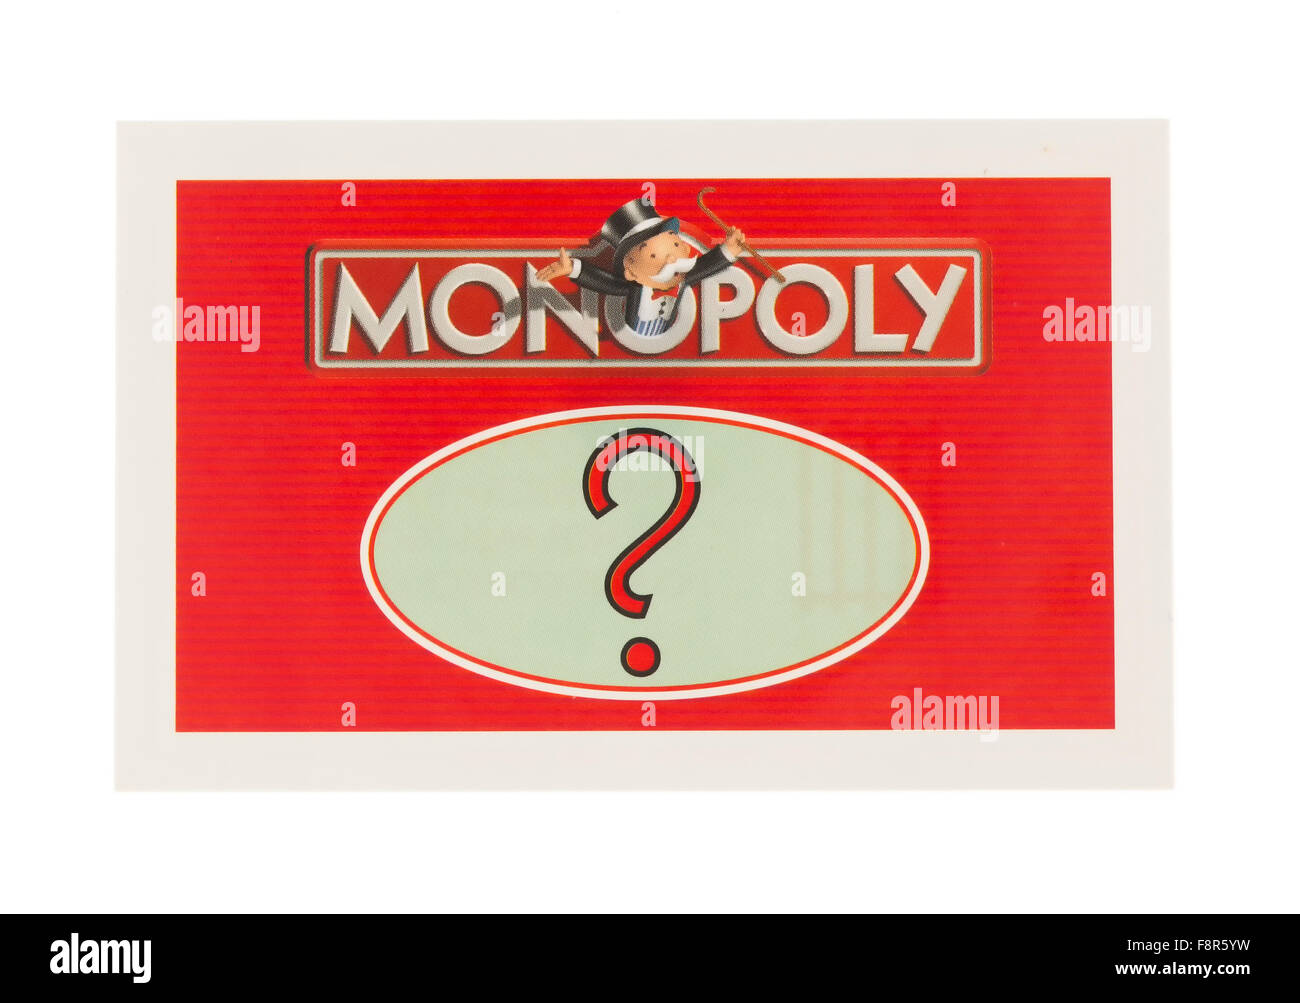 English Edition of Monopoly showing A Chance Card, The classic ...